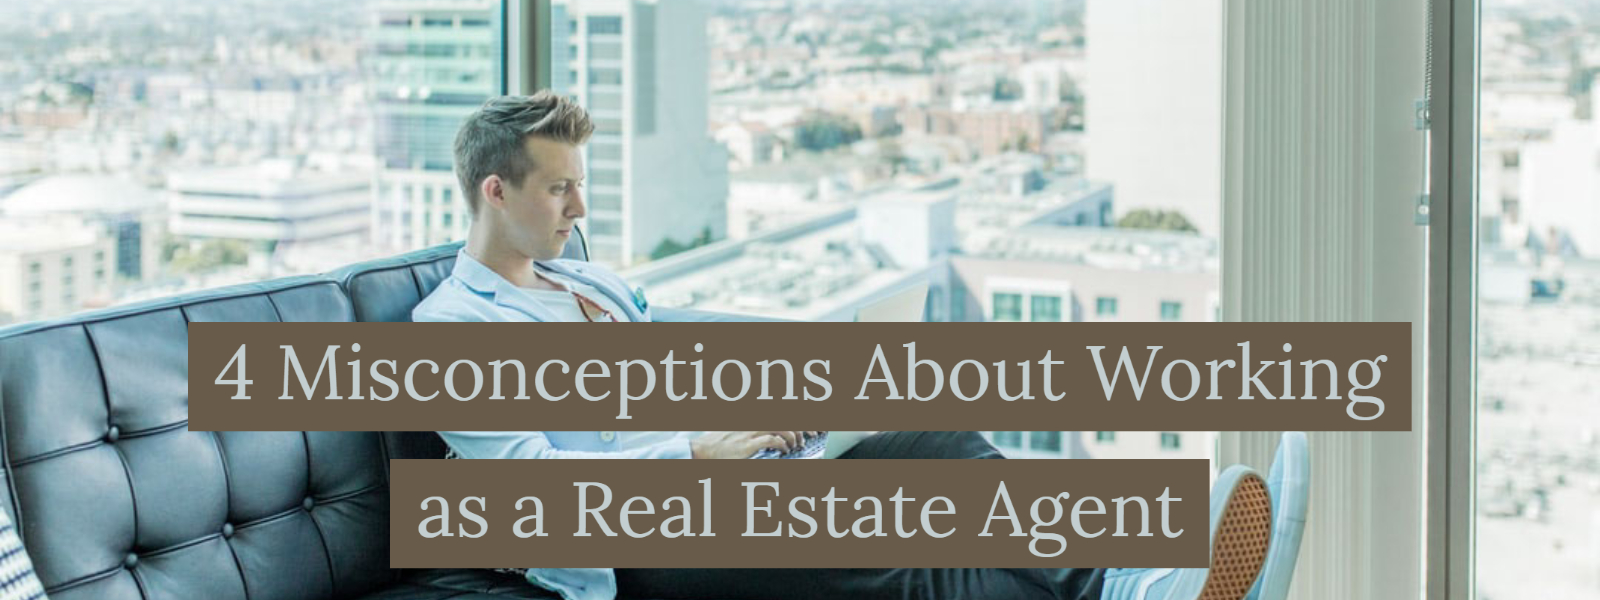 4 Misconceptions About Working as a Real Estate Agent